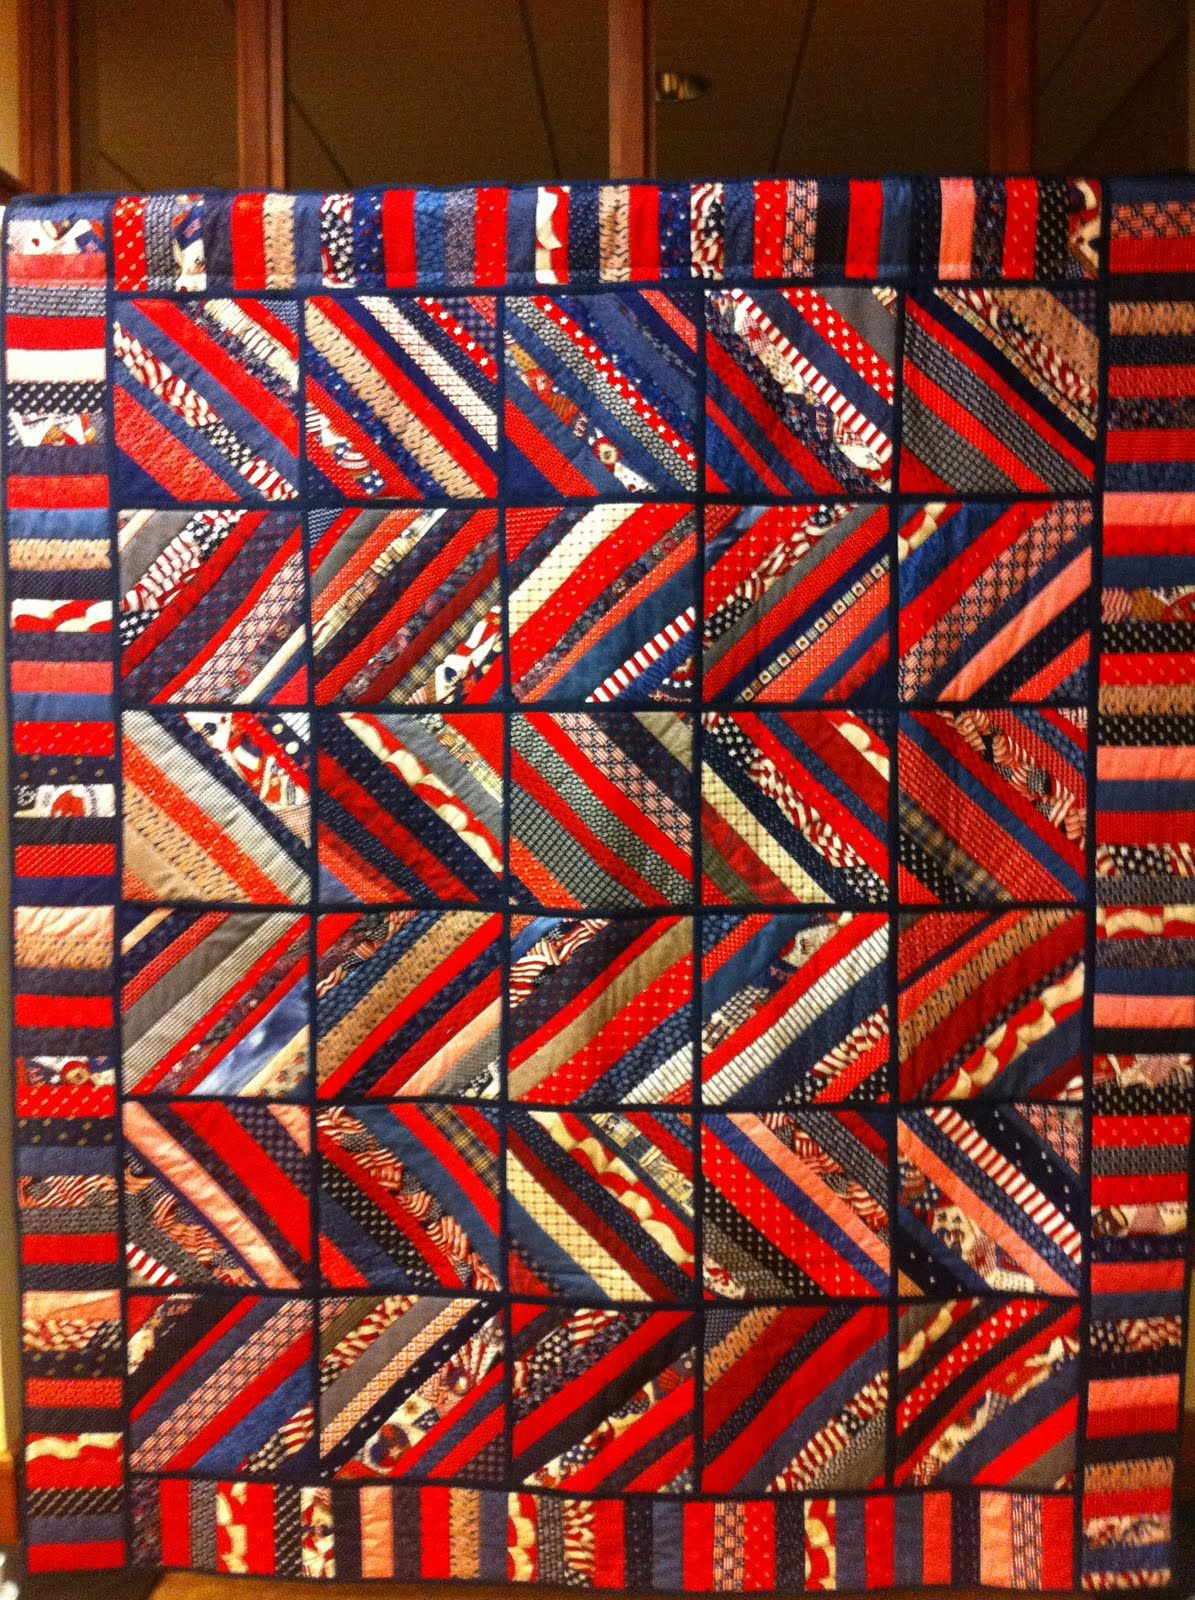 Quilt as You Go Strip Pieced Quilt in red, white, blue and beige ... : strip pieced quilt patterns - Adamdwight.com